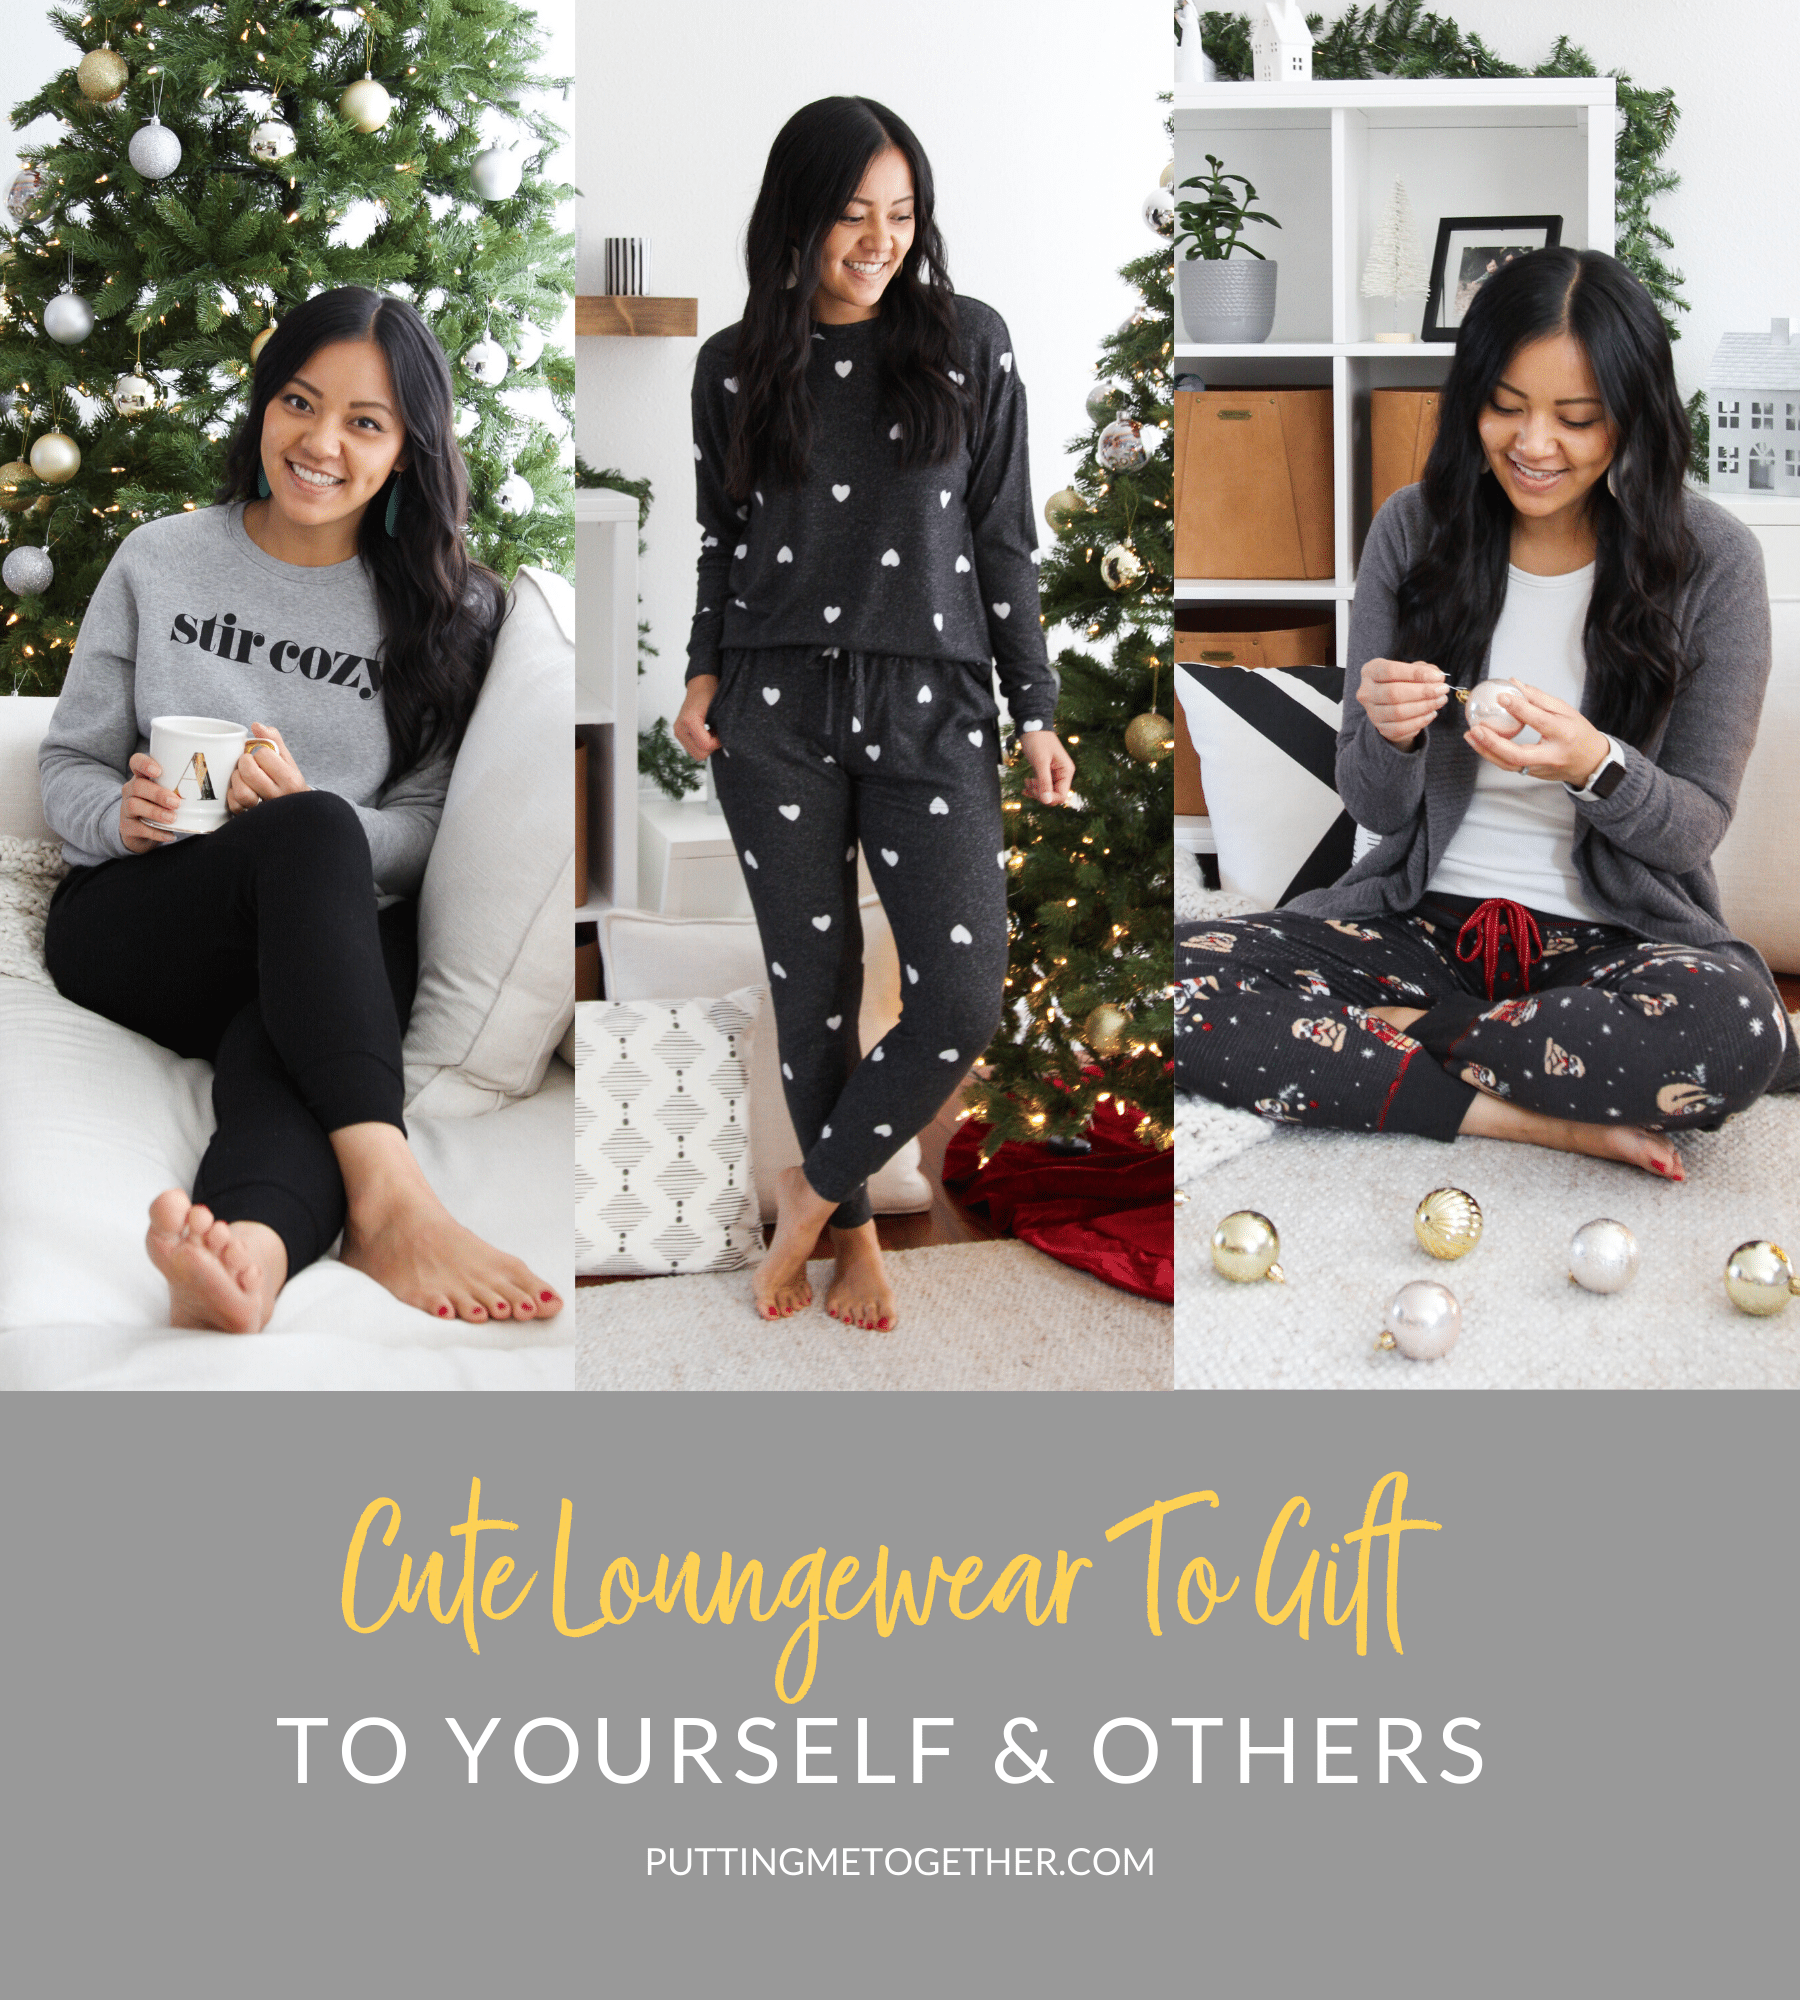 Cute Loungewear to Gift to Yourself and Others